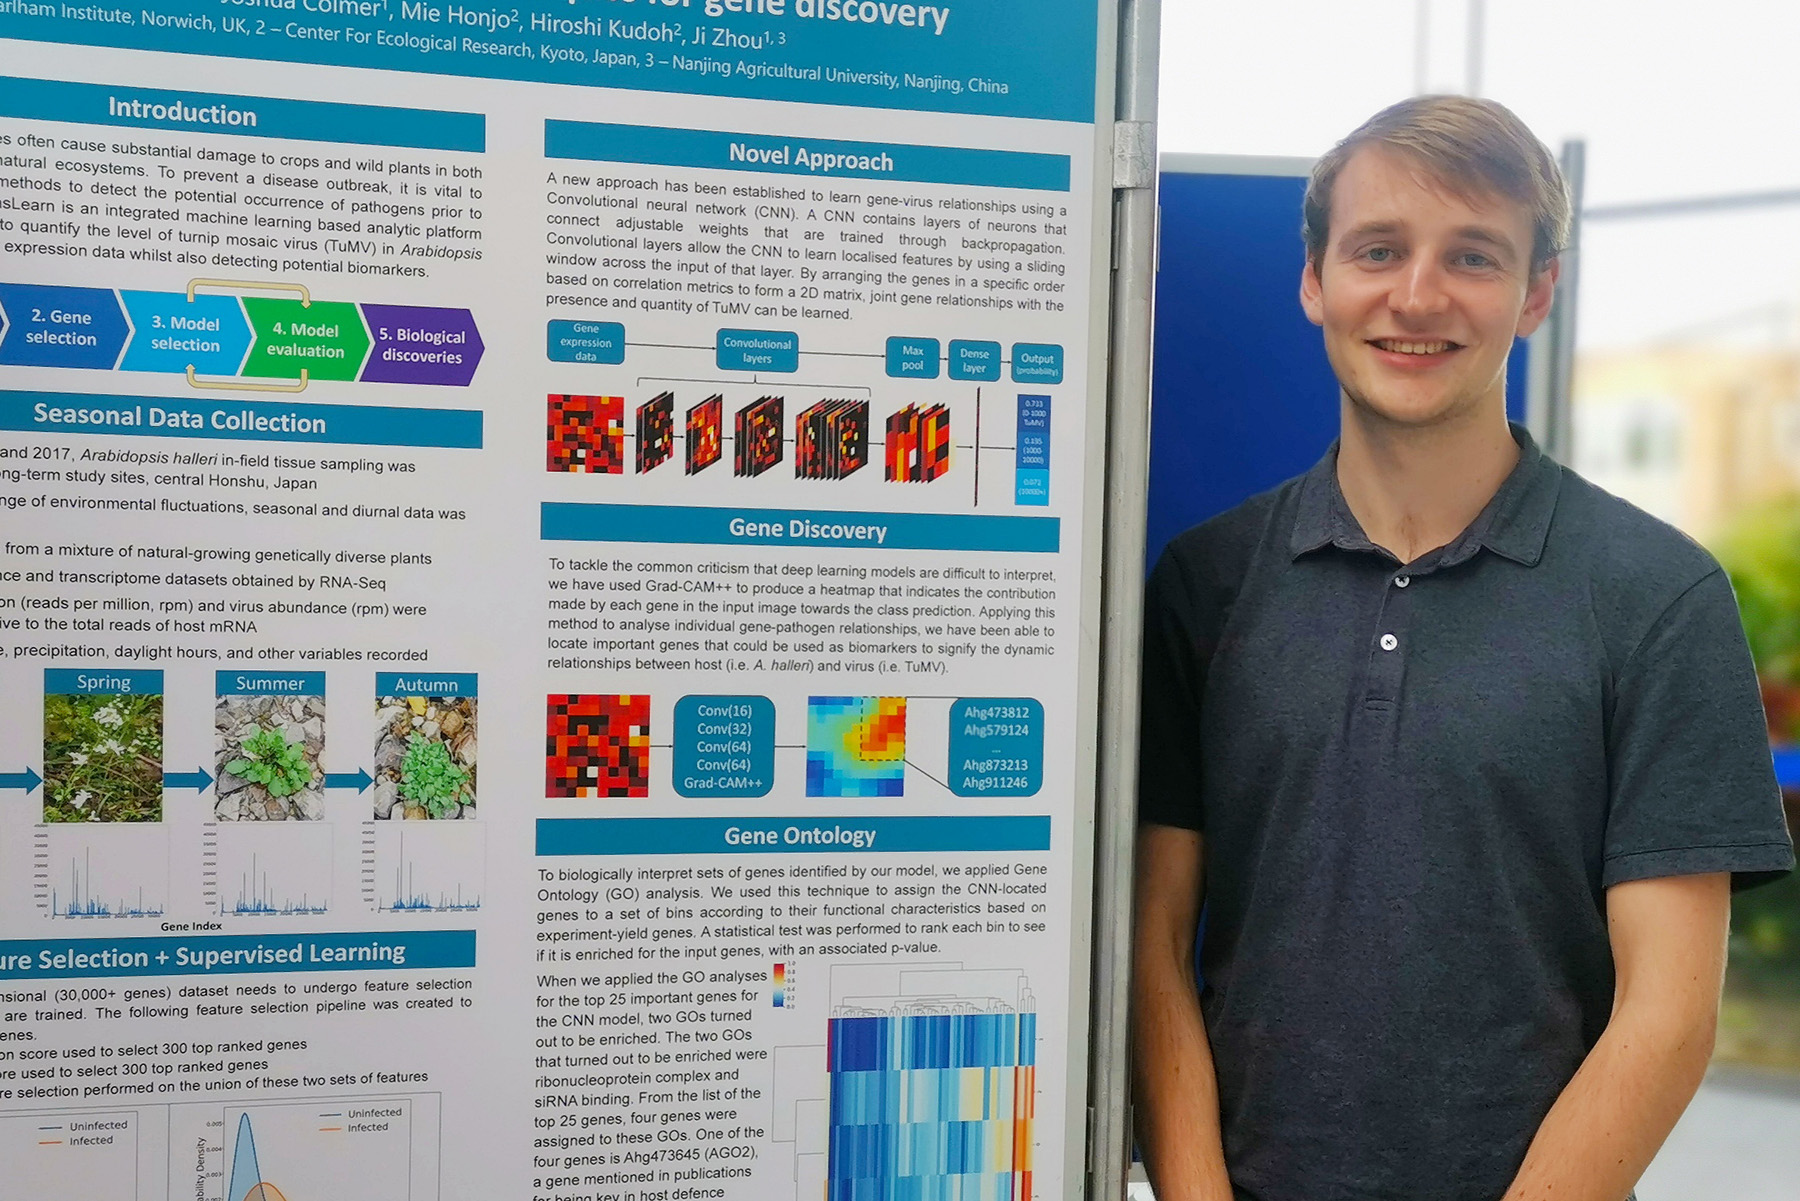 PhD Student Josh Colmer at Earlham Institute